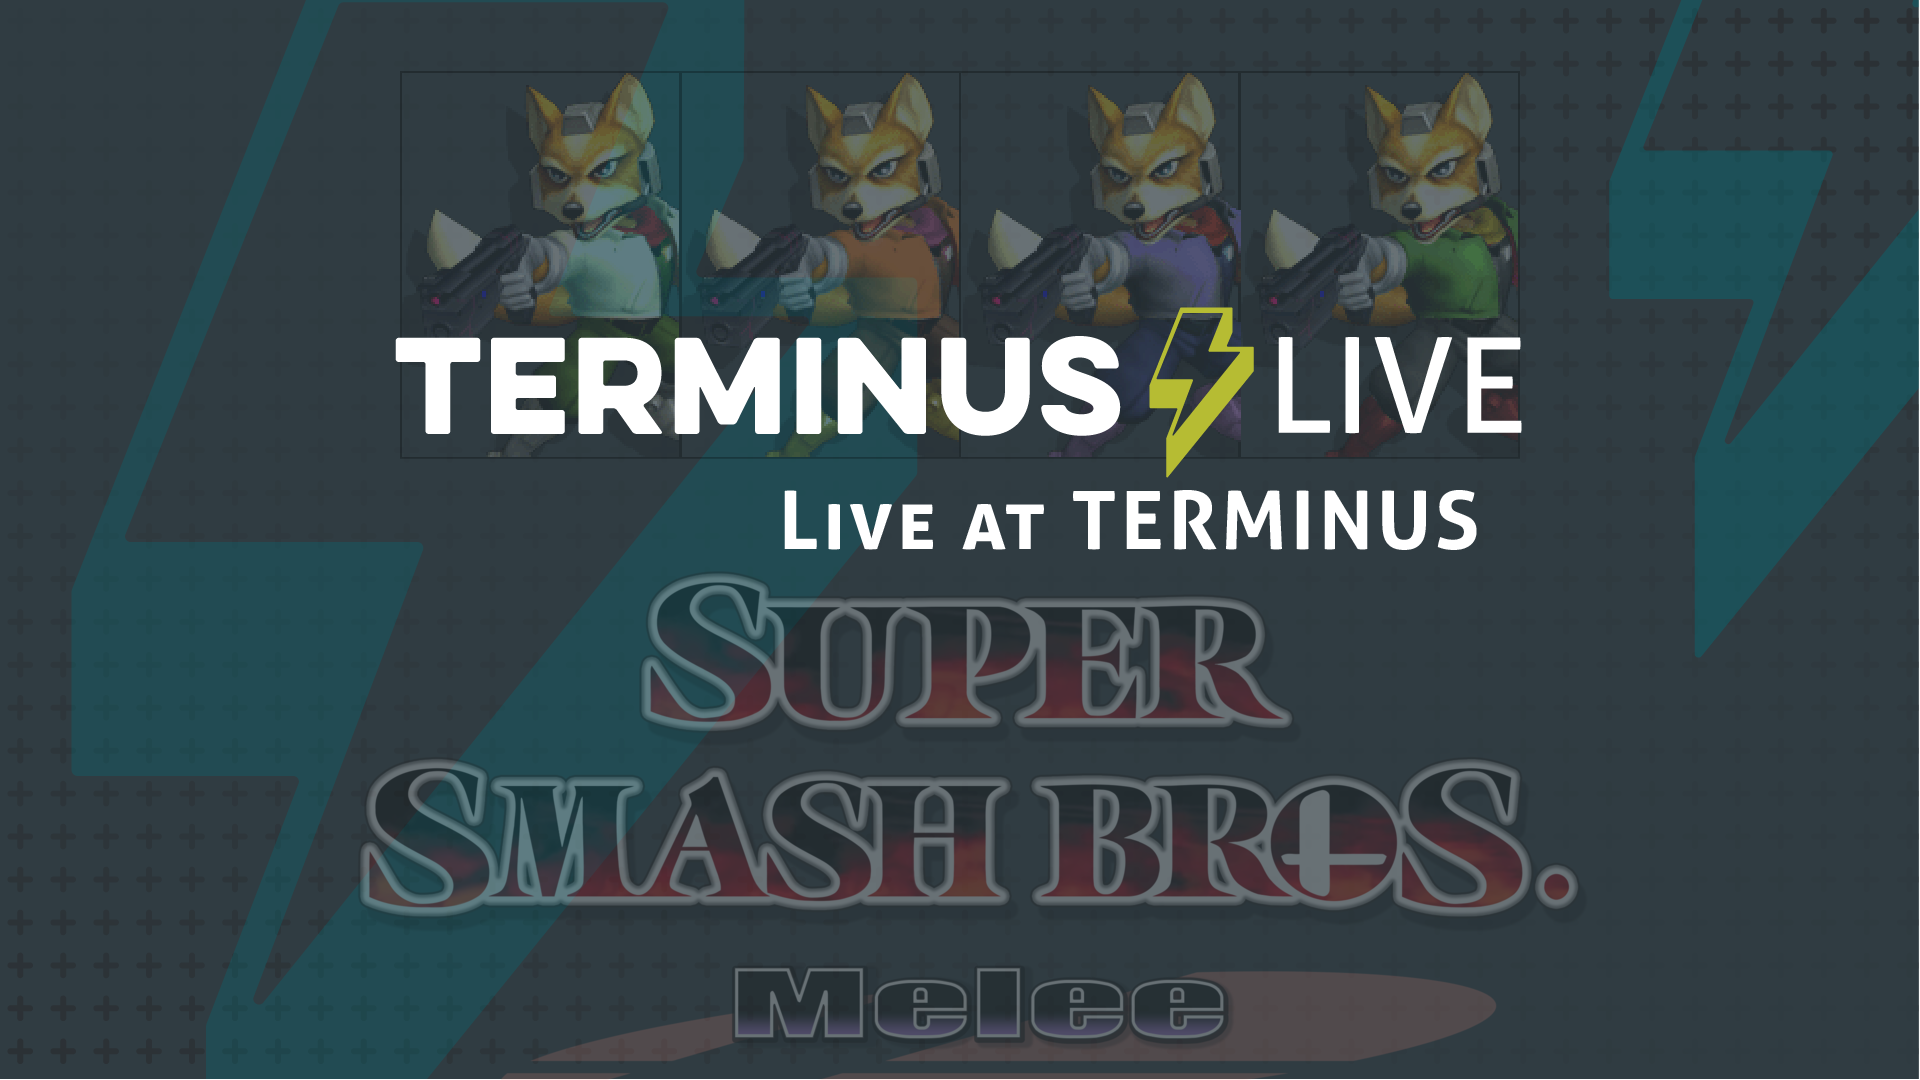 TERMINUS Live: Live from TERMINUS